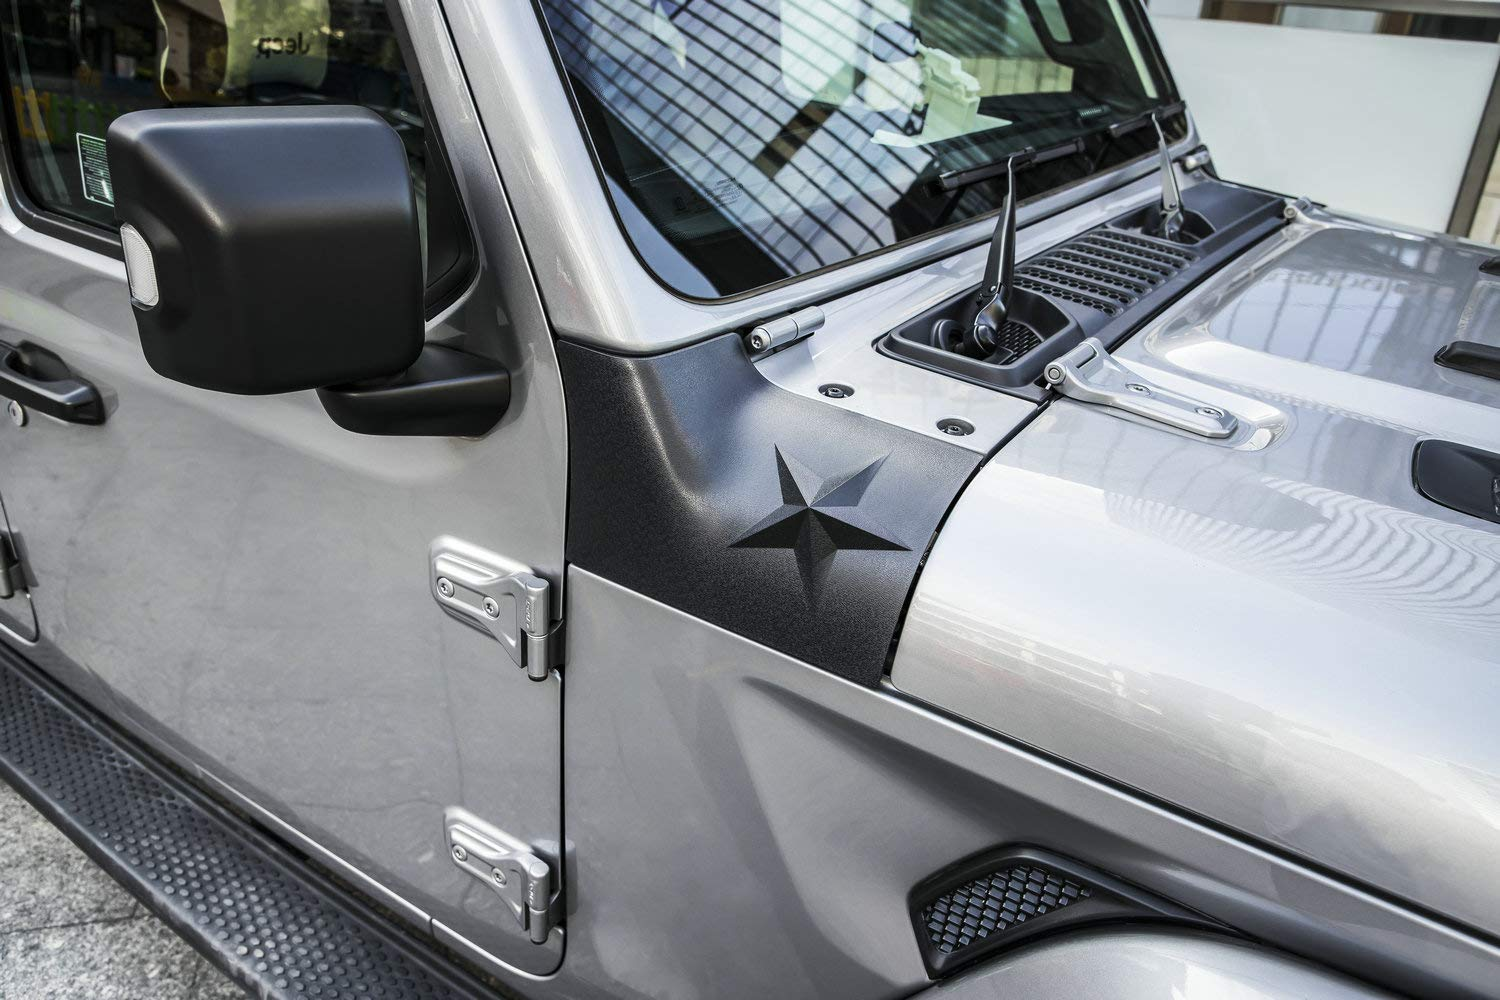 Danti Black Cowl Body Armor Outer Cowling Cover for Jeep Wrangler JL JLU Exterior Accessories Part 2018 2019